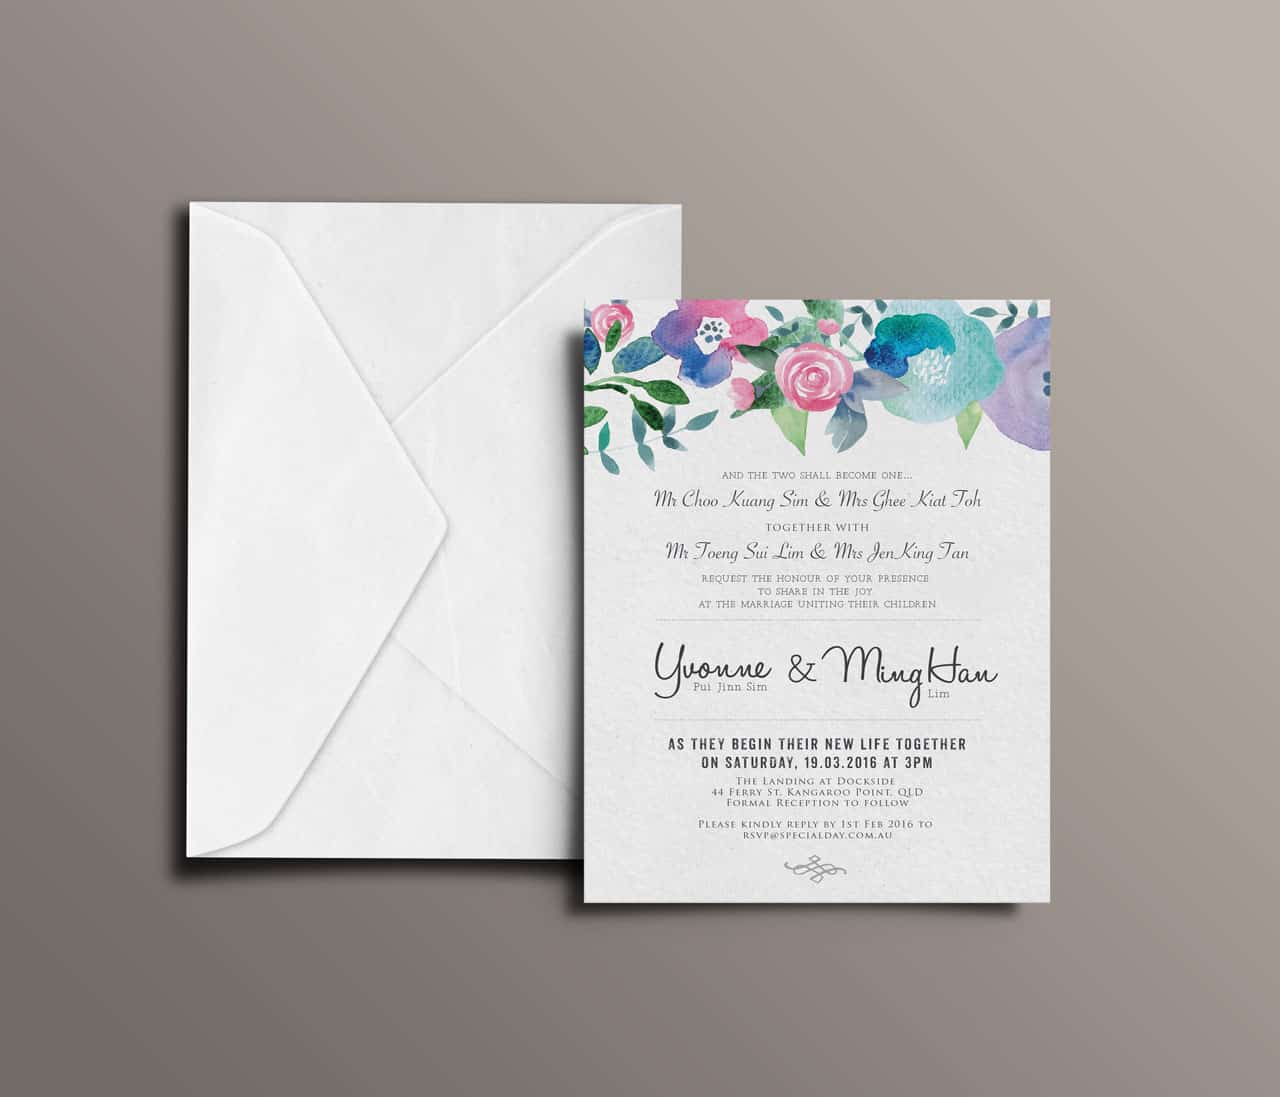 wedding invitation graphic design sydney - 28 images - wedding ...